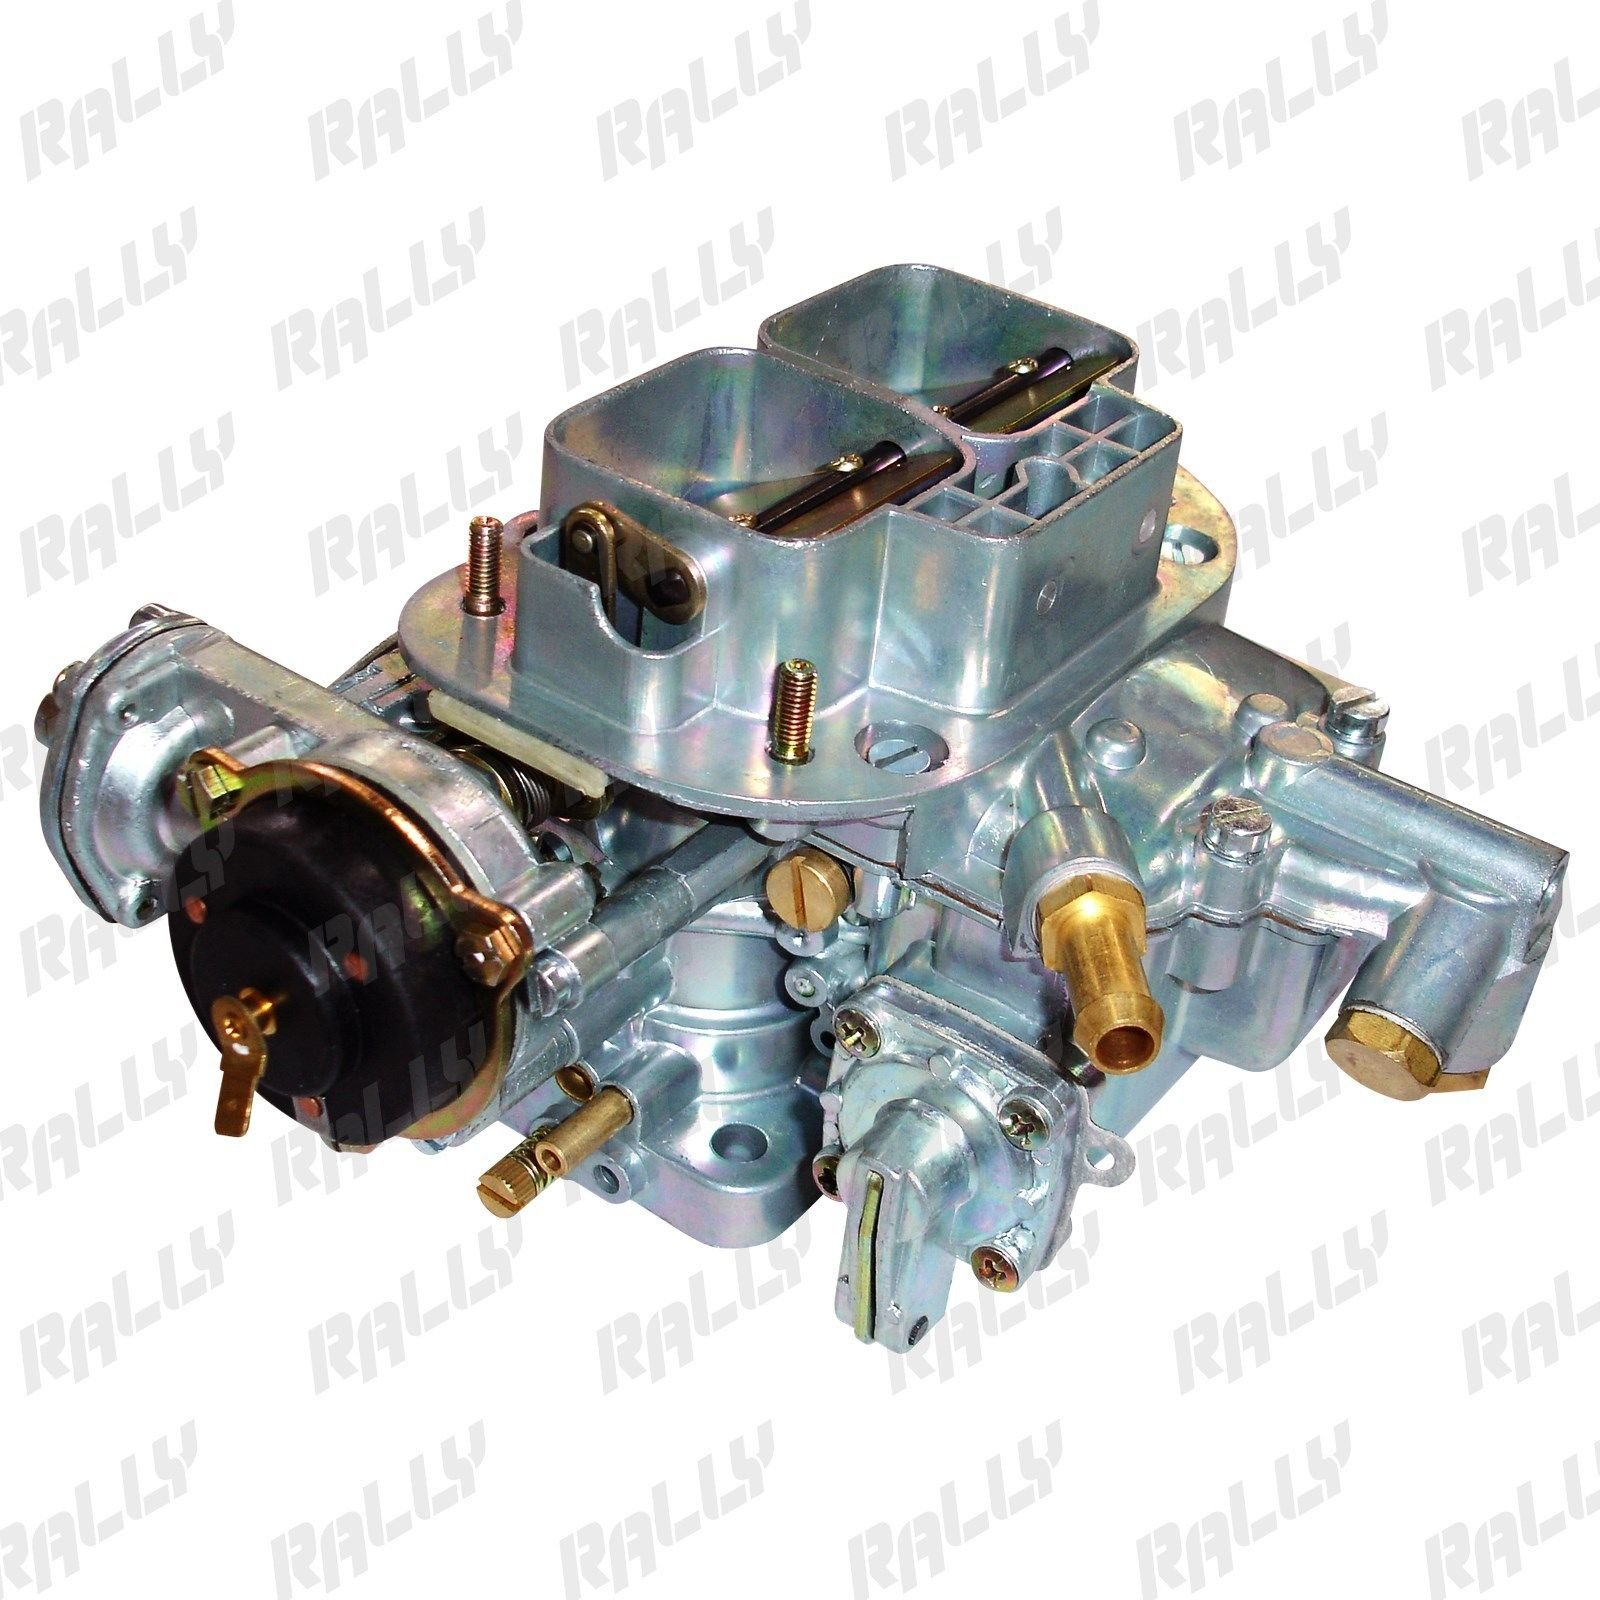 428 UNIVERSAL CARBURETOR TYPE WEBER 38X38 2 BARREL FIAT RENAULT FORD VW 4CYL JM428